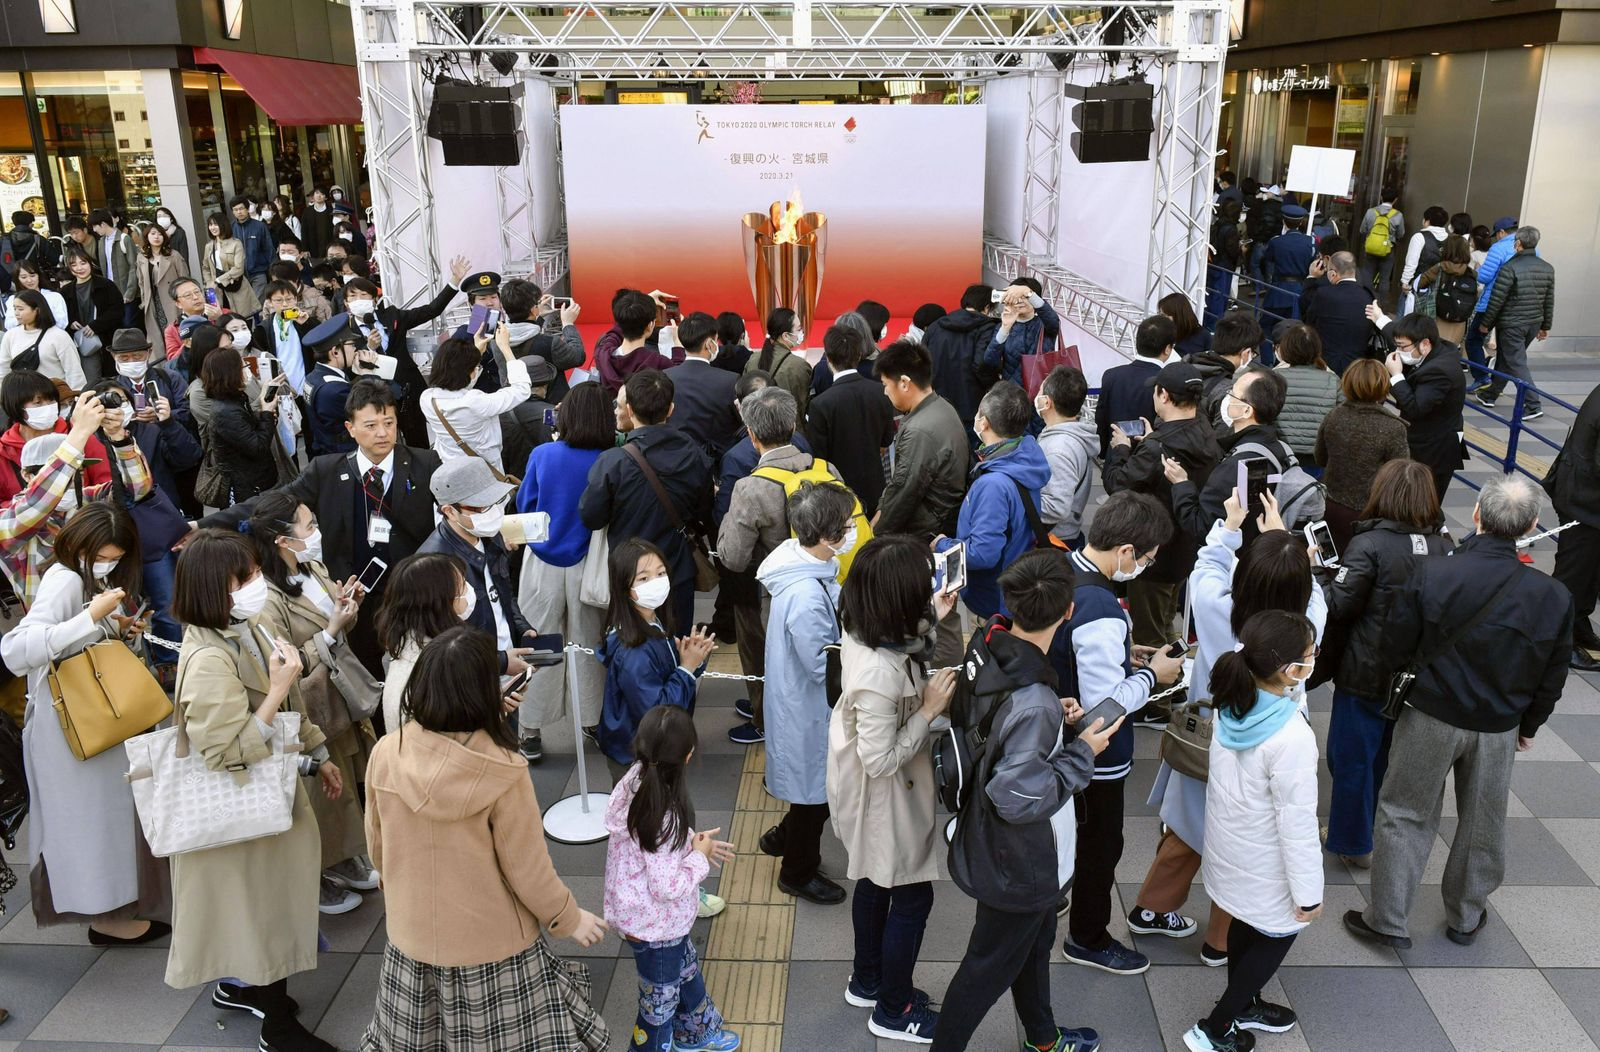 Tour of Olympic flame in Japan The Olympic flame is put on display at JR Sendai Station in Japan s Miyagi Prefecture on